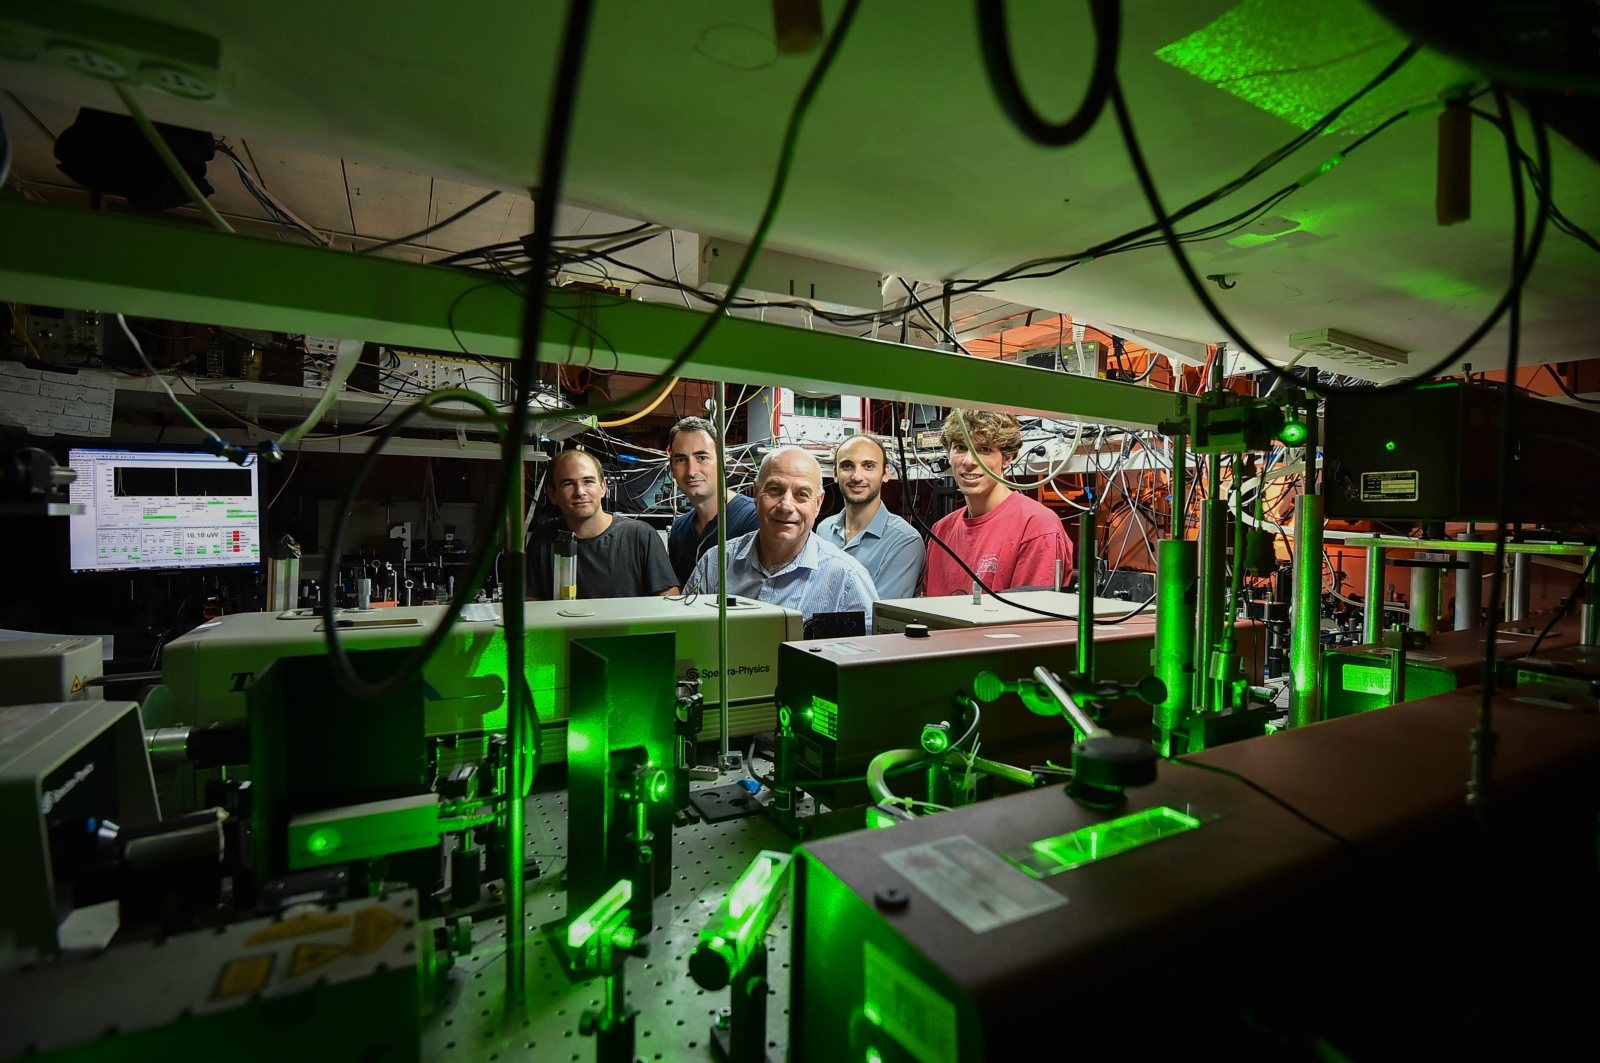 Scientists from Technion-Israel Institute of Technology